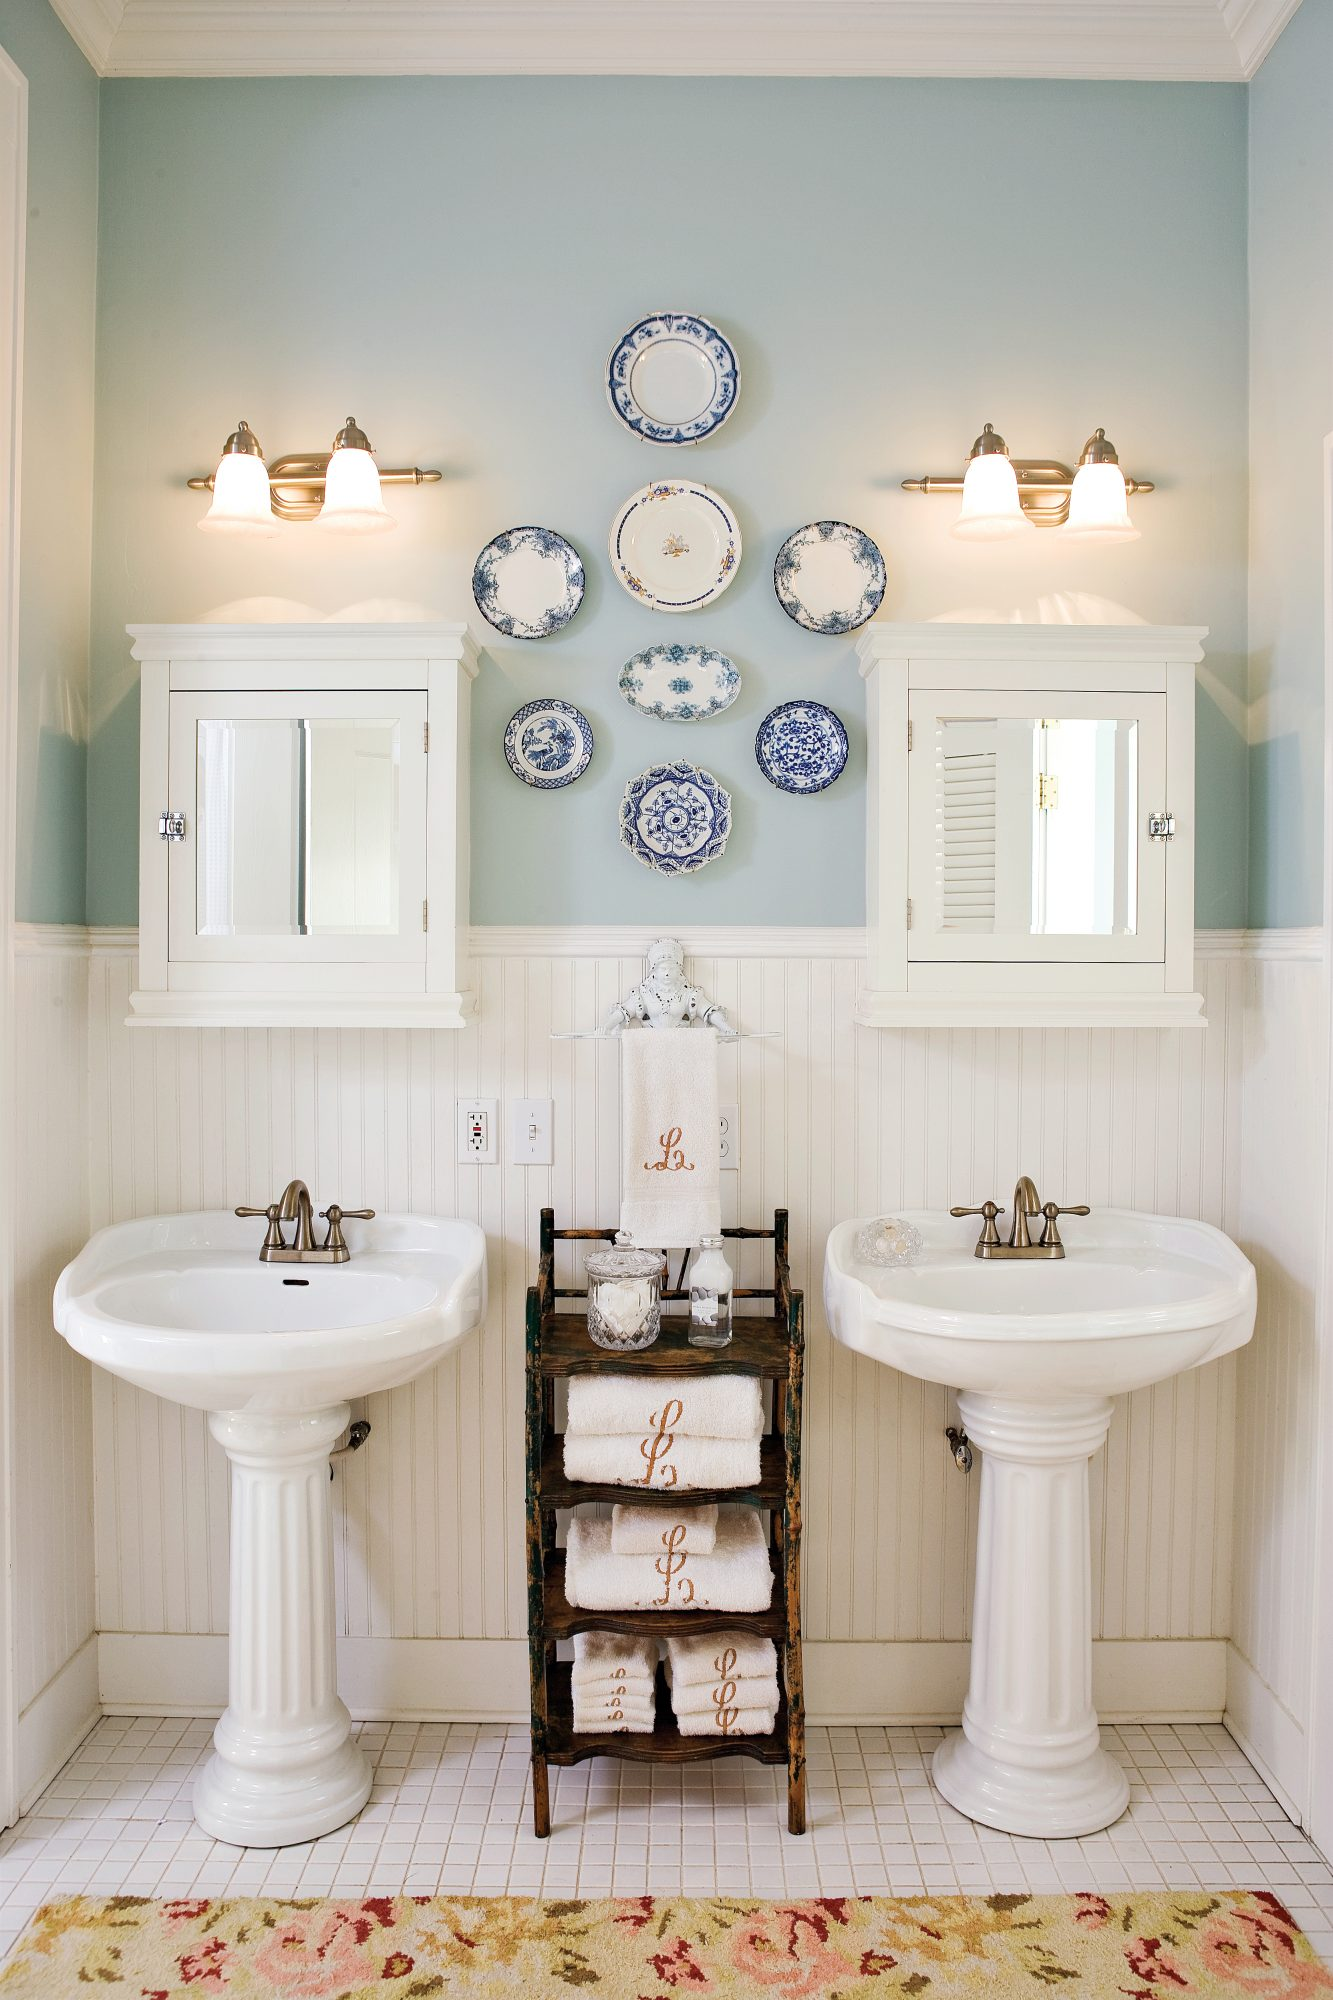 Brilliant Bath and Laundry Room Combo - Southern Living